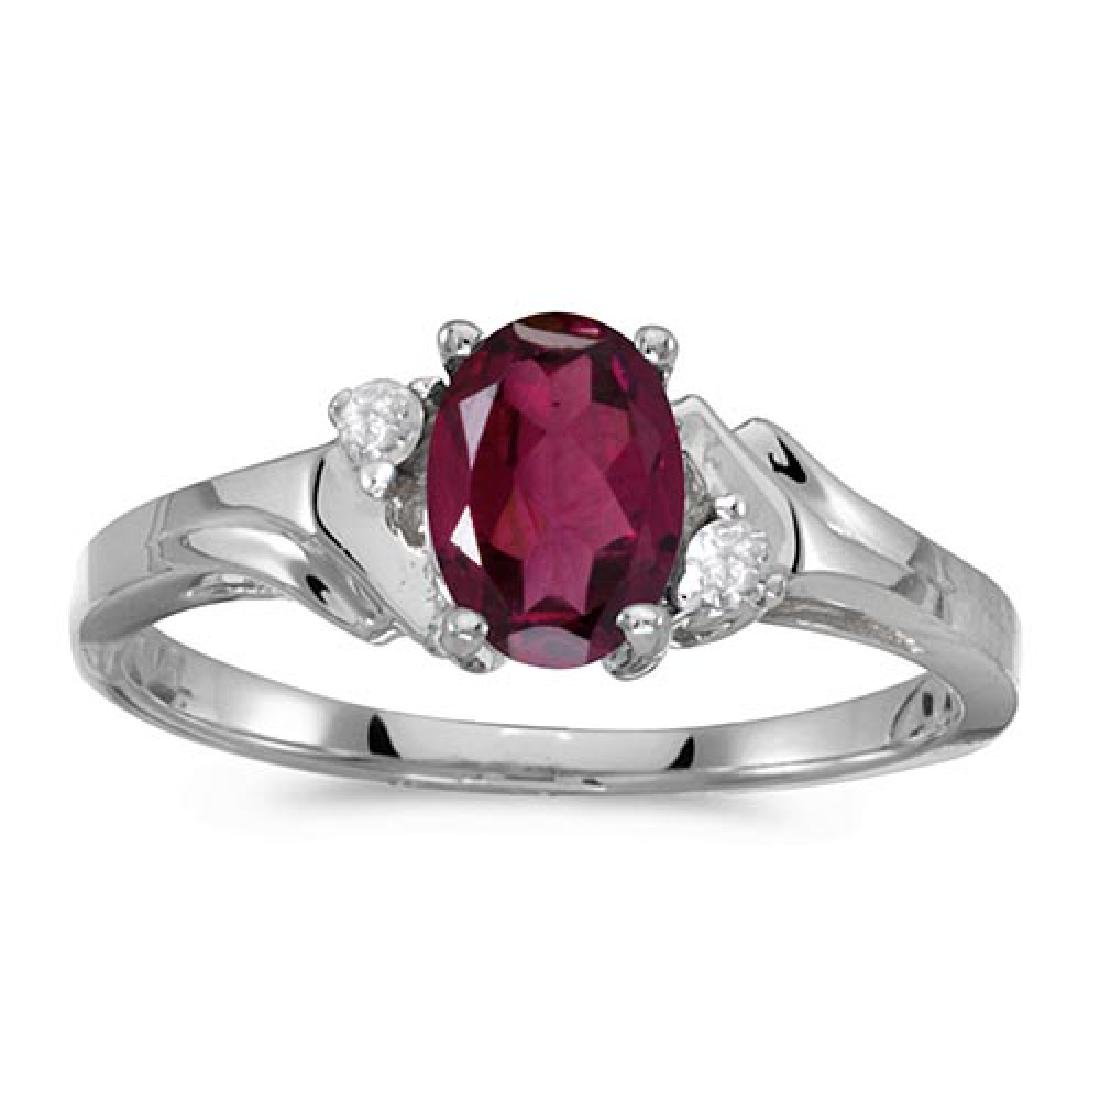 Certified 10k White Gold Oval Rhodolite Garnet And Diam